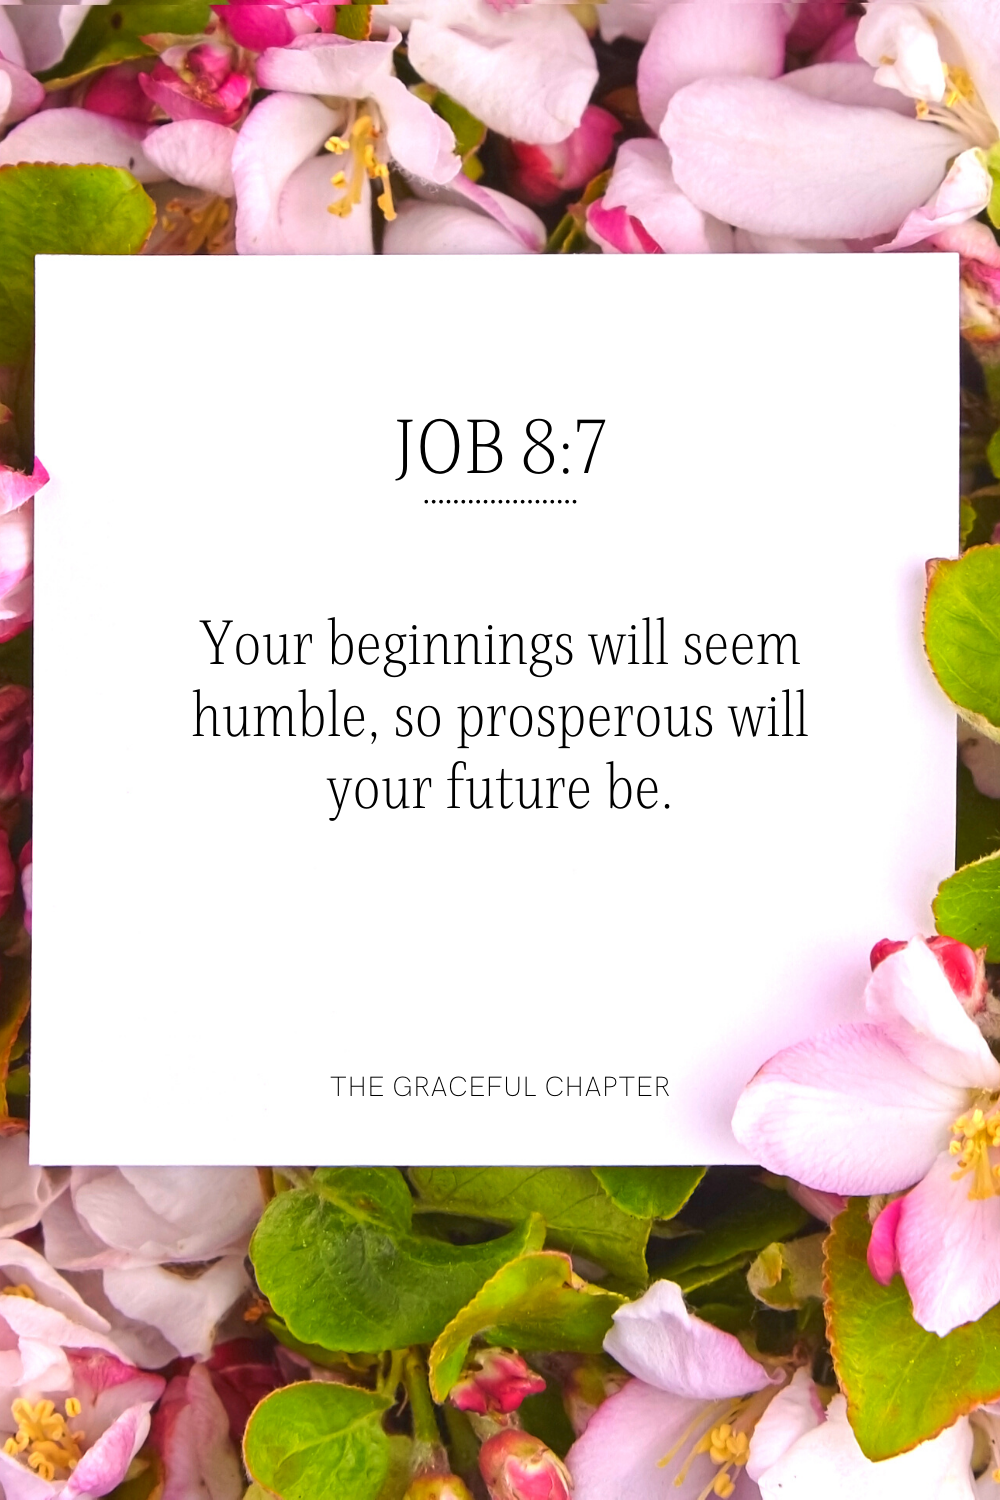 Your beginnings will seem humble, so prosperous will your future be. Job 8:7